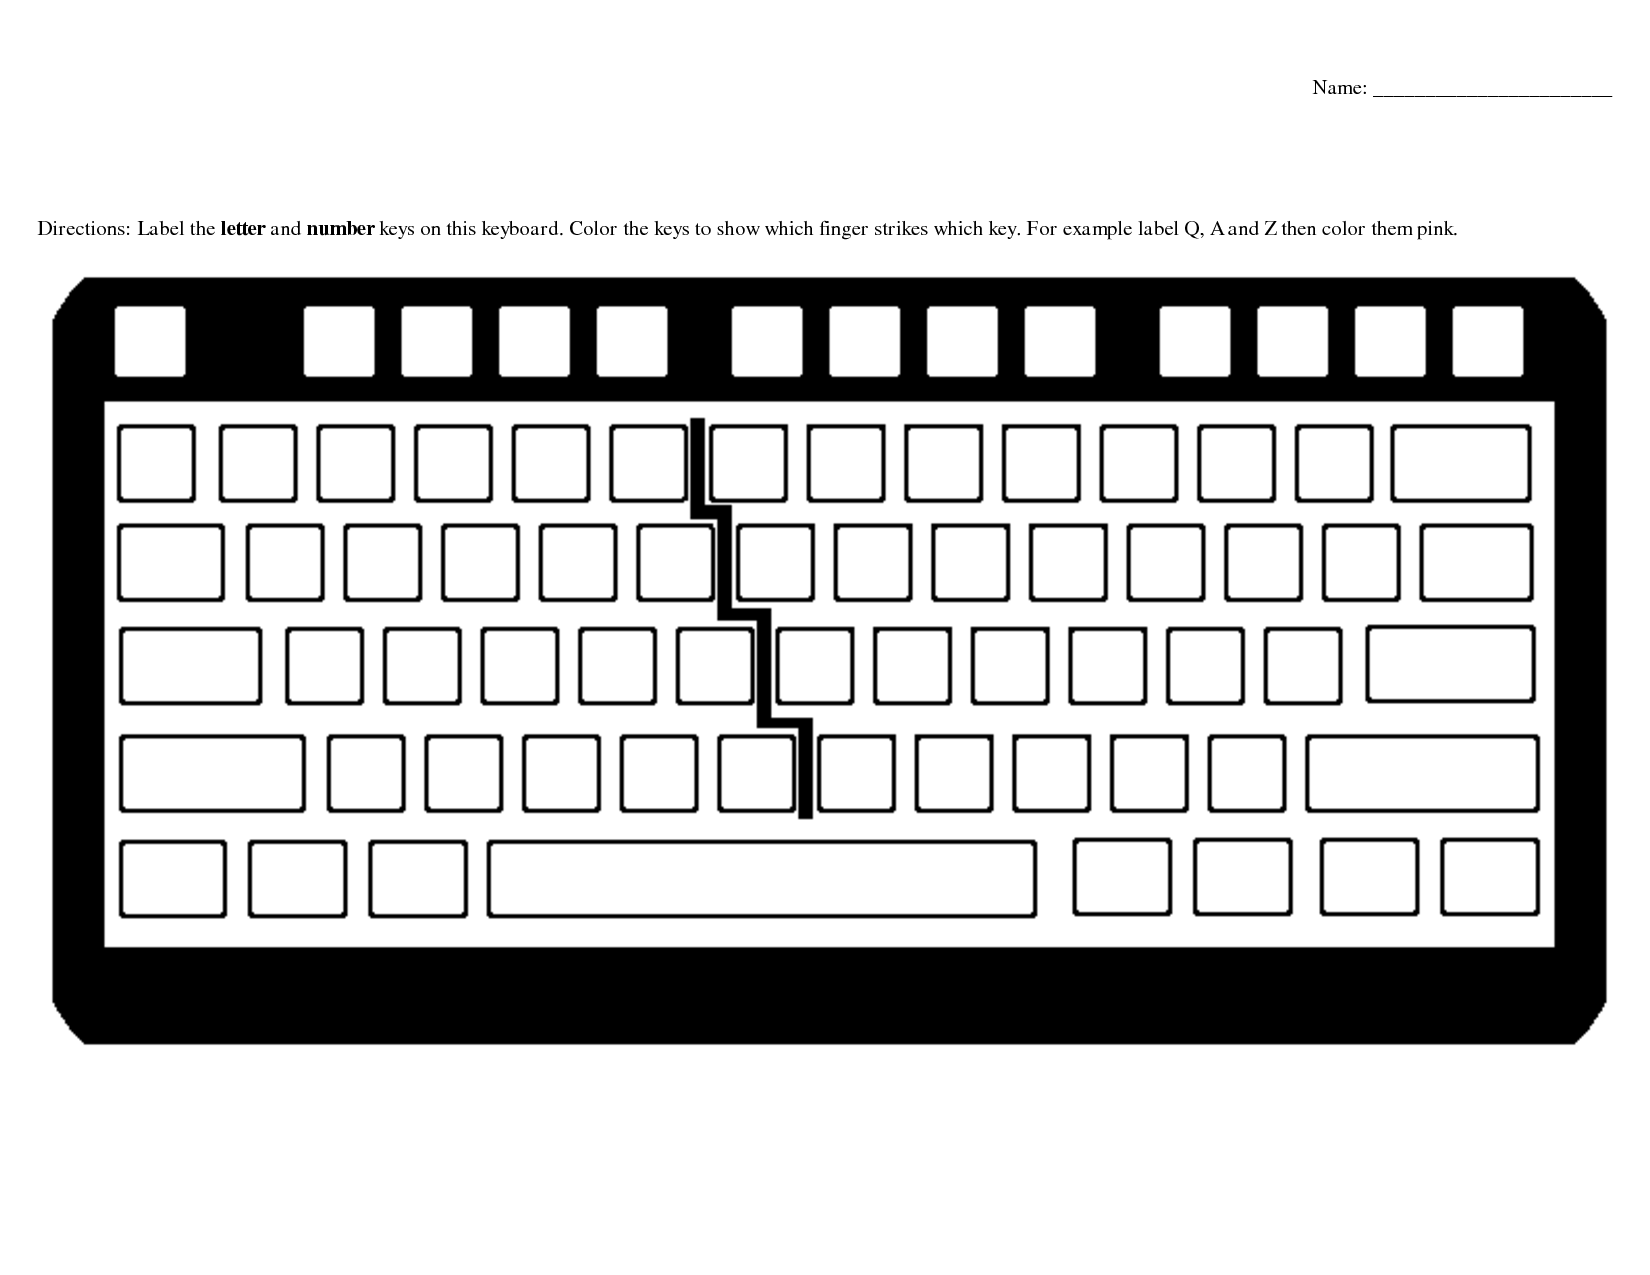 Blank lenovo computer keyboard clipart. Clipartfest chart